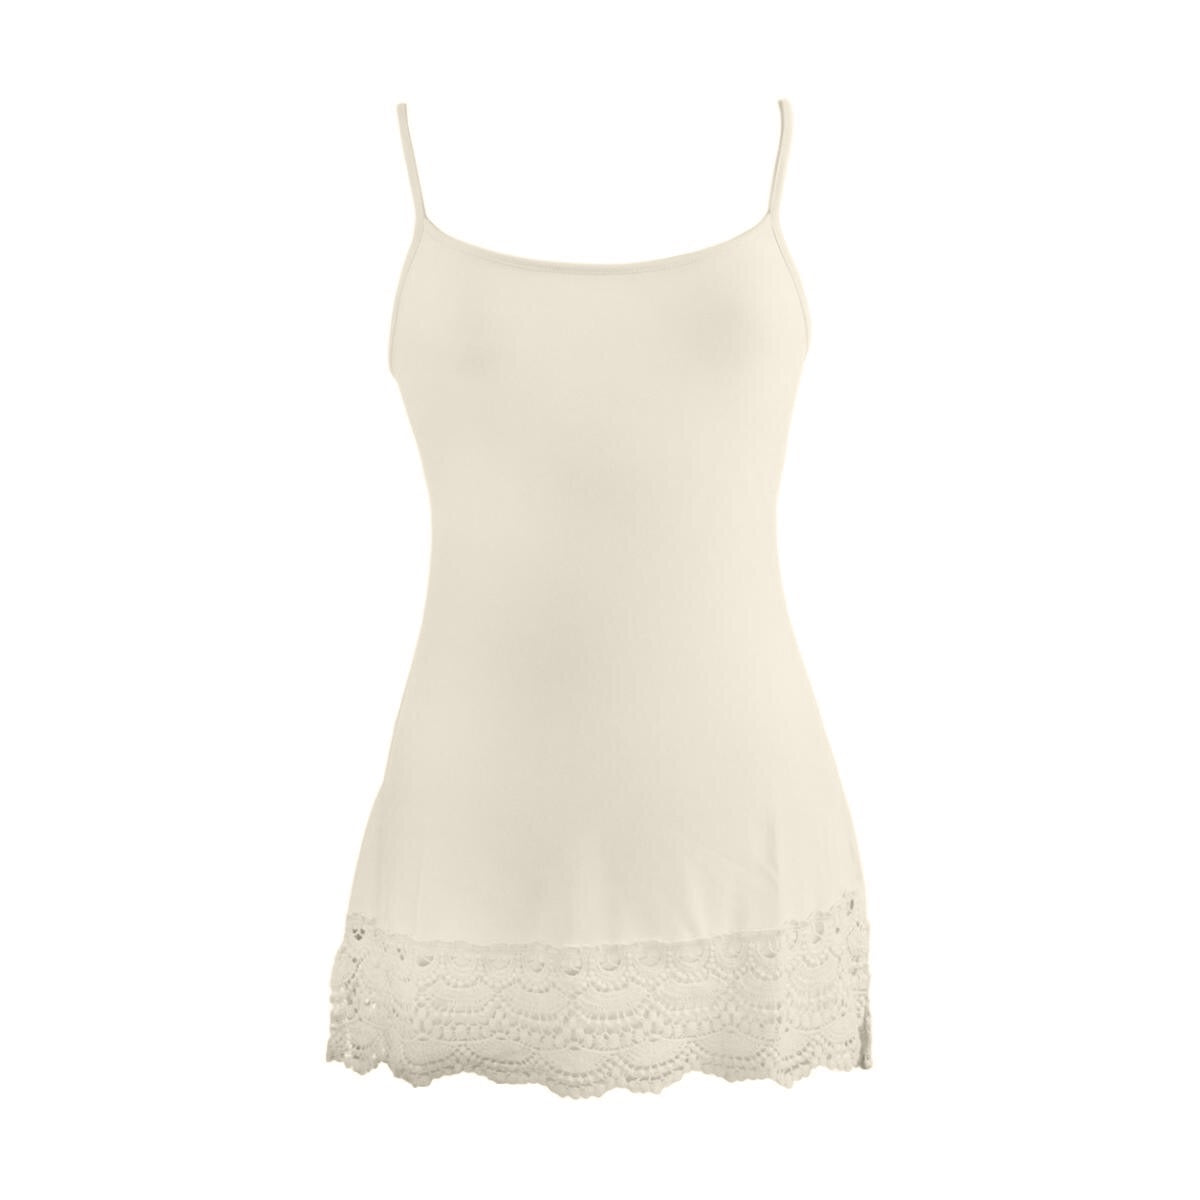 Foxglove Crochet Trim Top Extender | cream